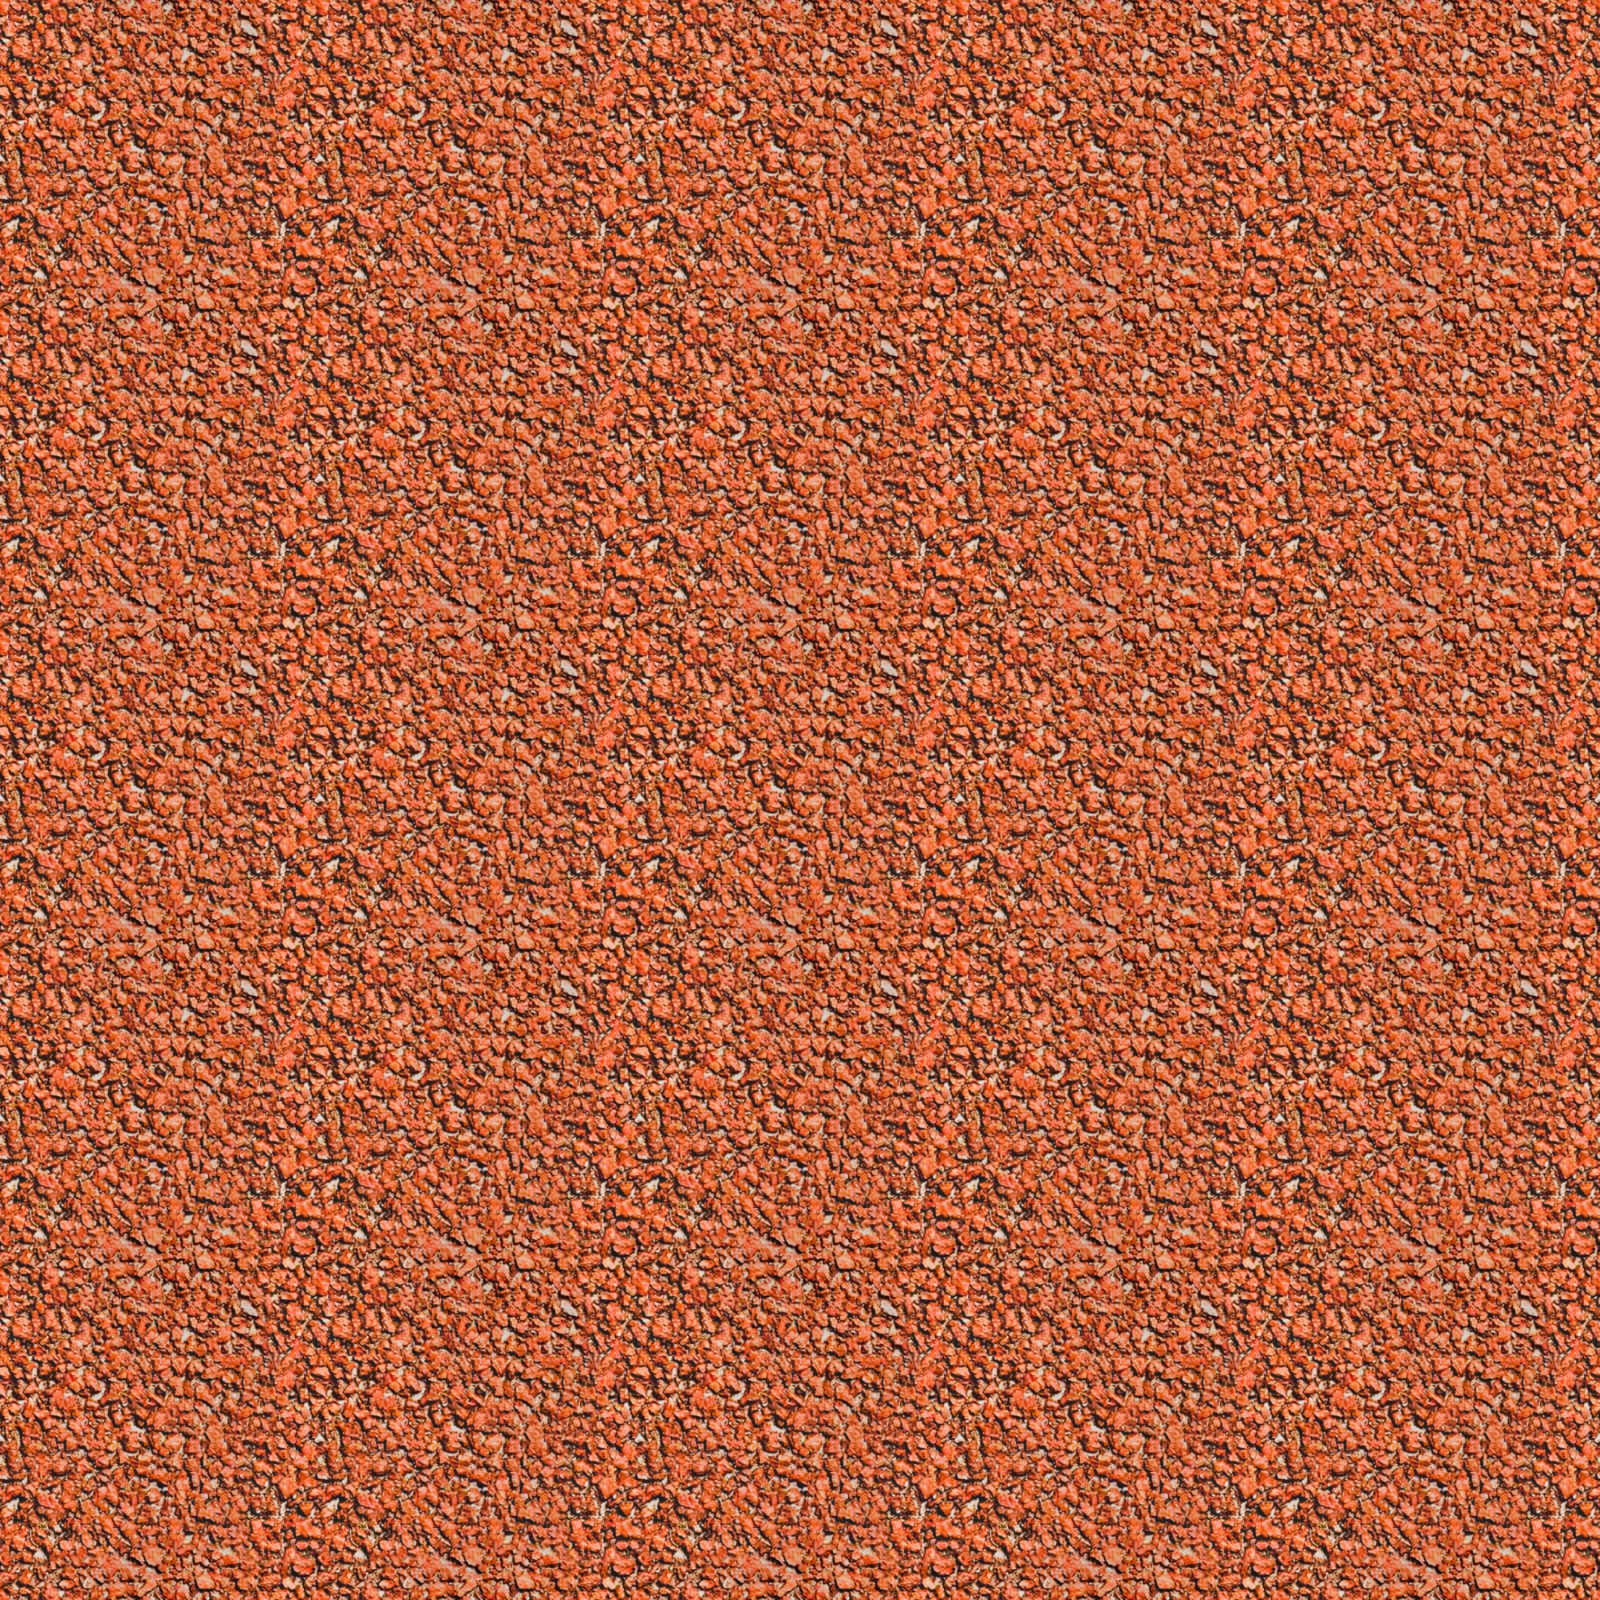 Red Gravel Seamless Texture